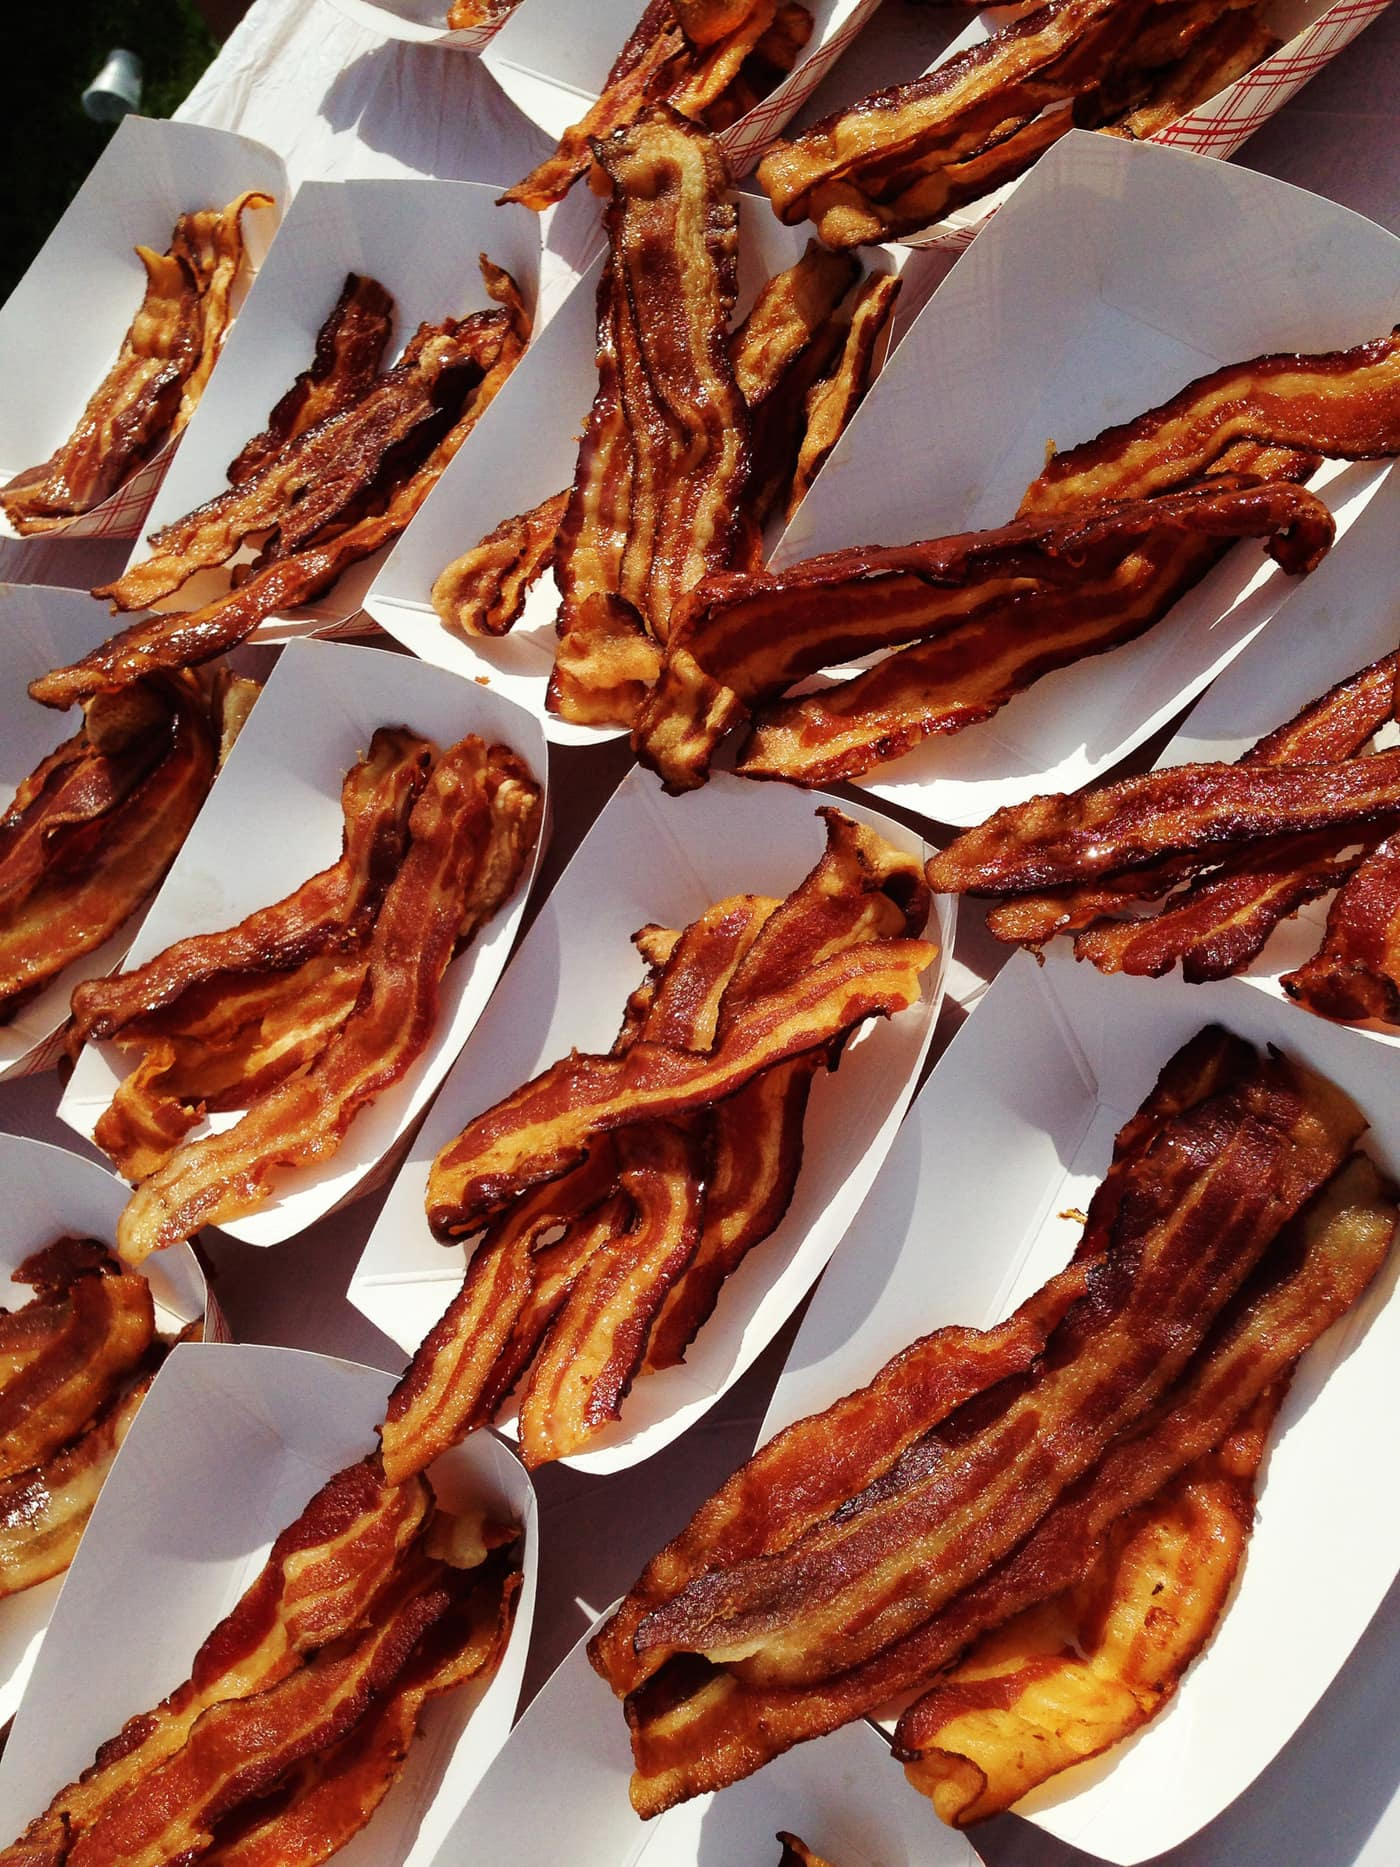 Unlimited bacon at the end of the Bacon Chase 5K in Chicago, Illinois.